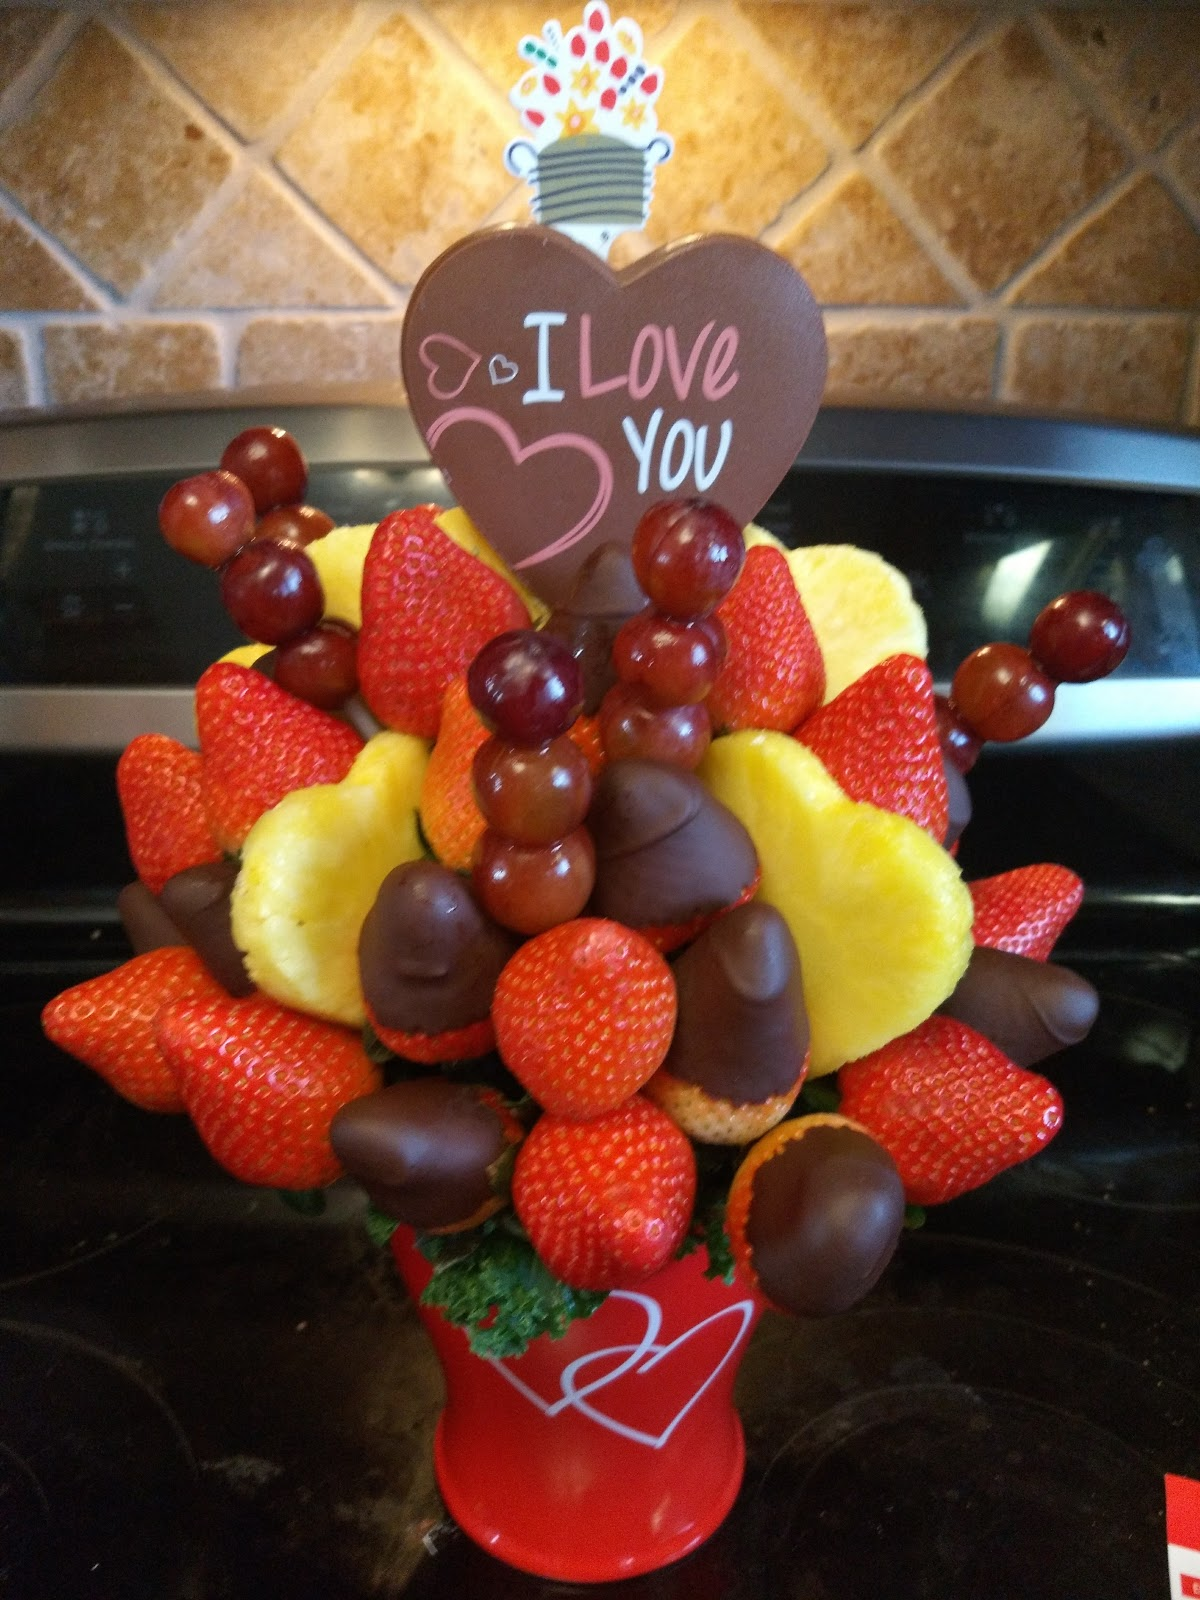 edible Arrangements Makes a Delicious & Special Gift this ...